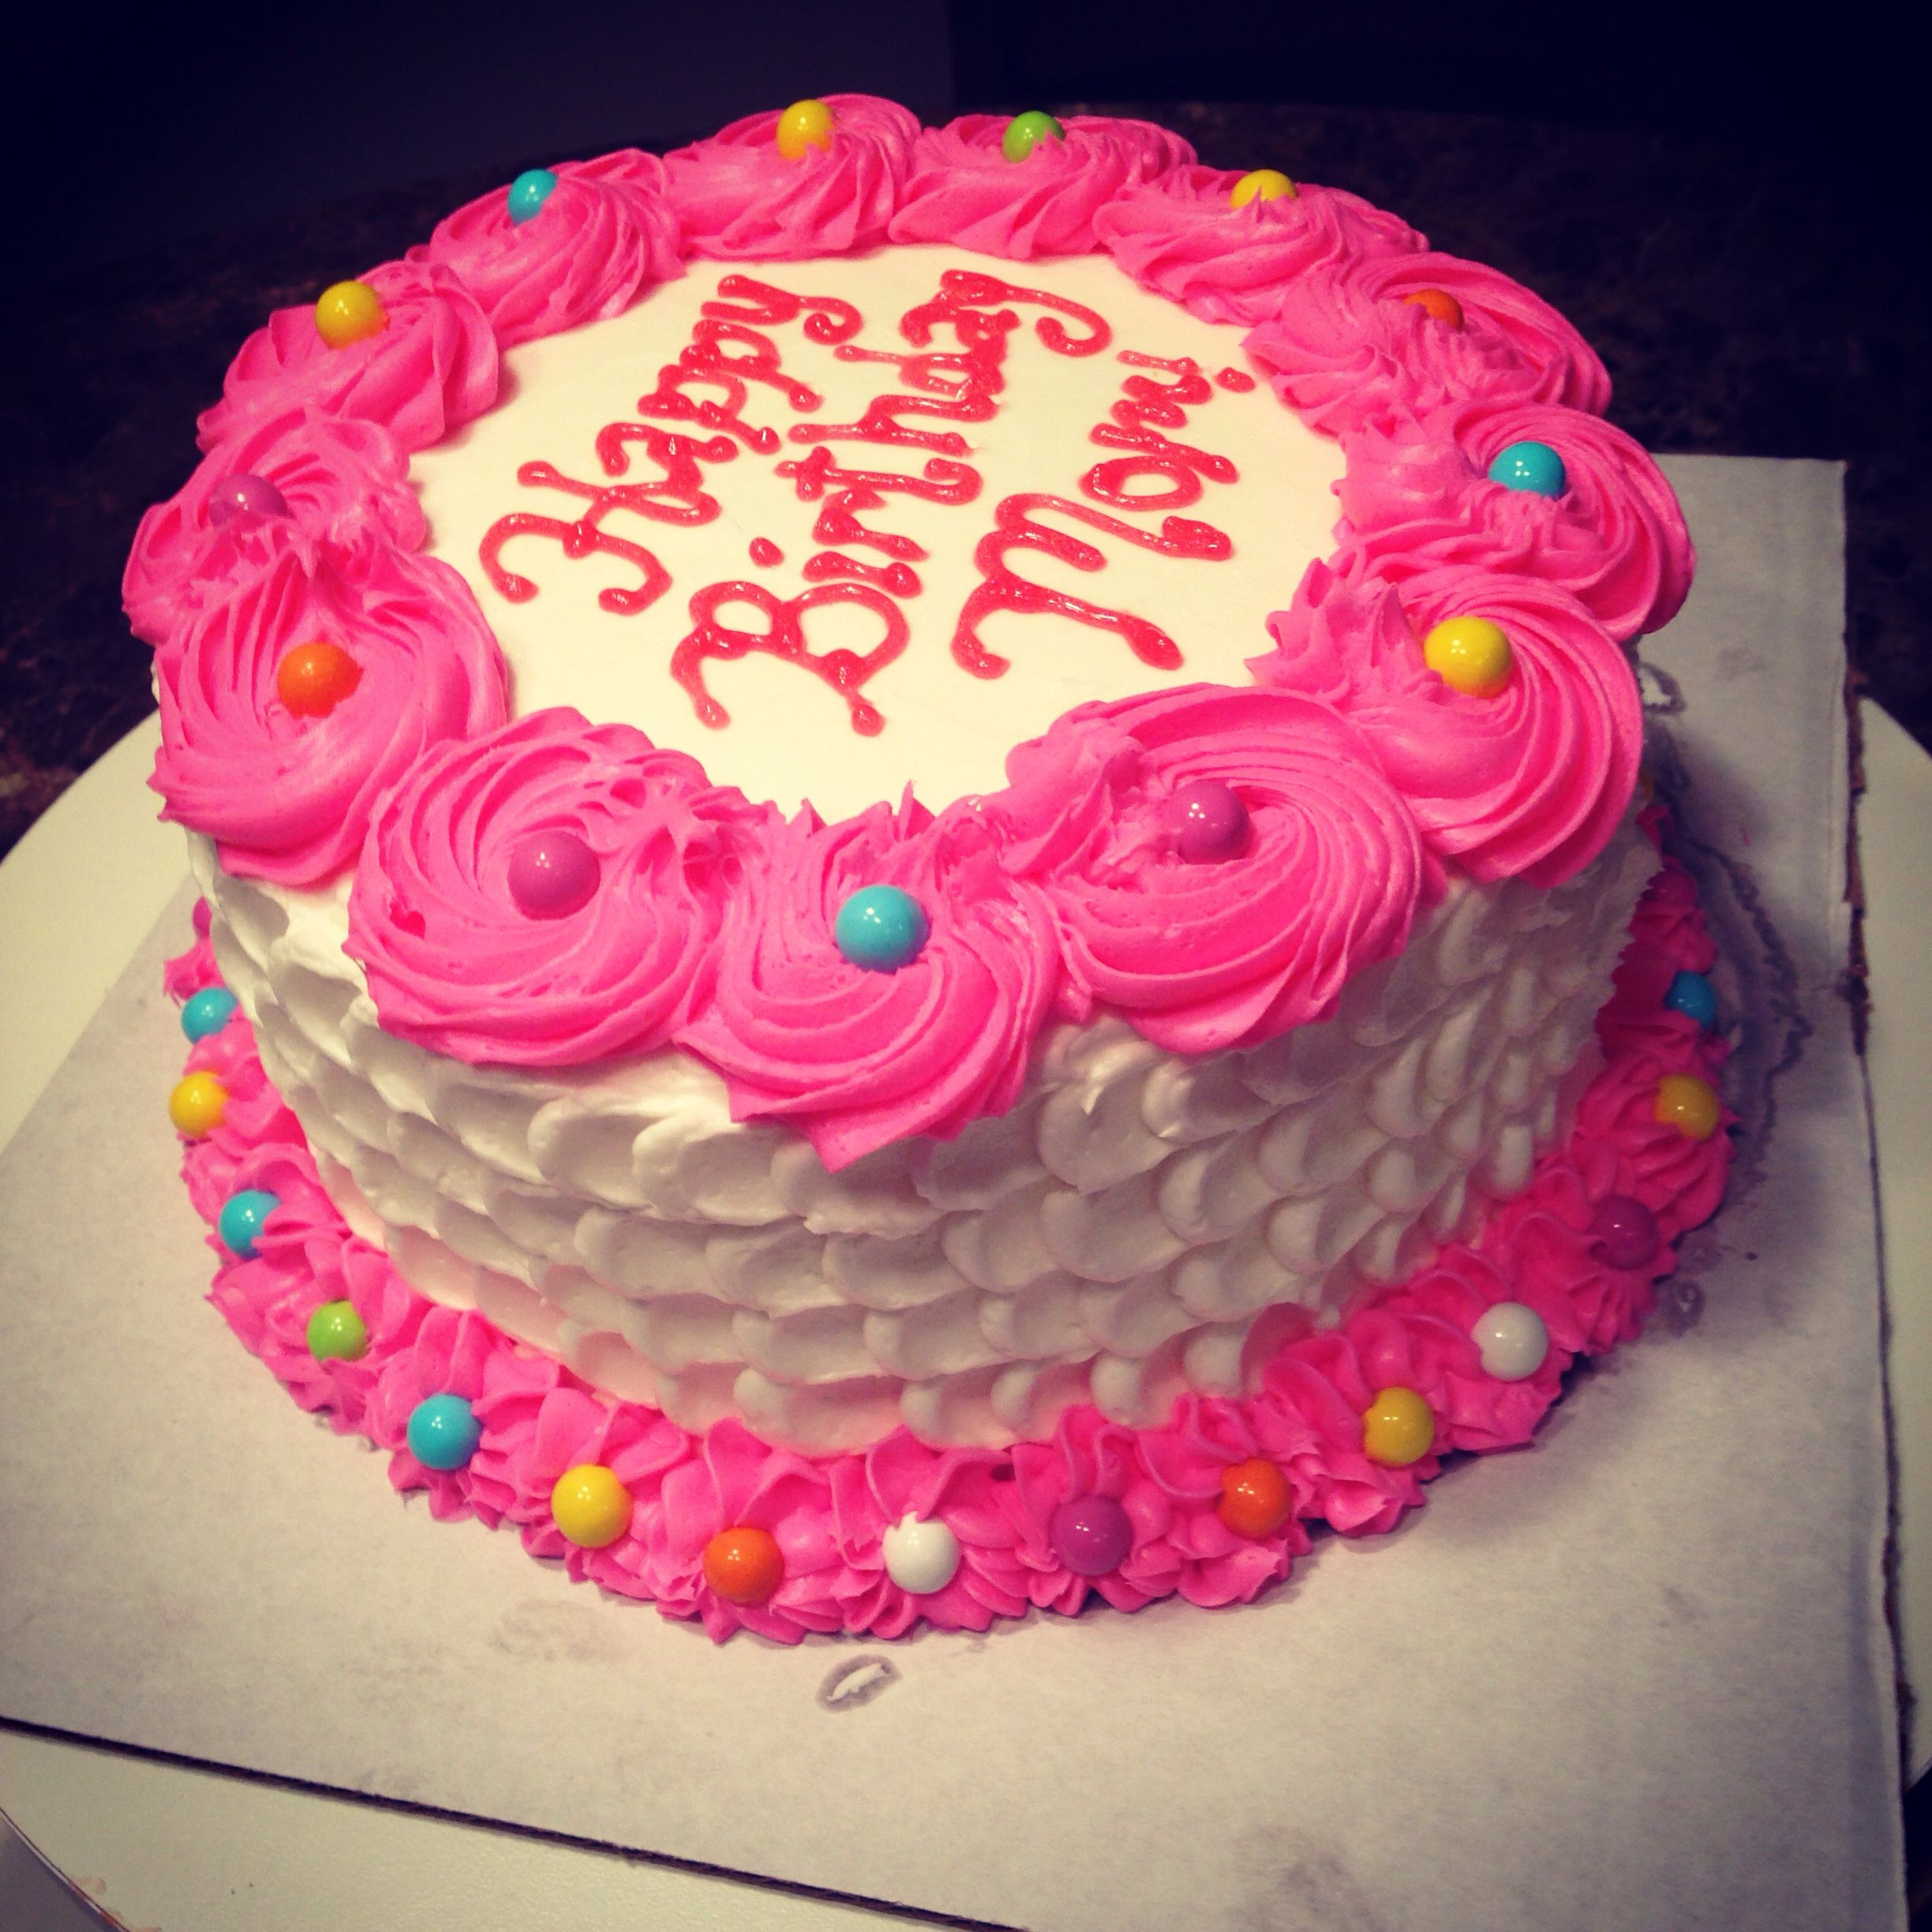 Happy Birthday Mom In Spring Colors With Buttercream Frosting Cakesbykelsey Happy Birthday Mom Cake Butter Cream